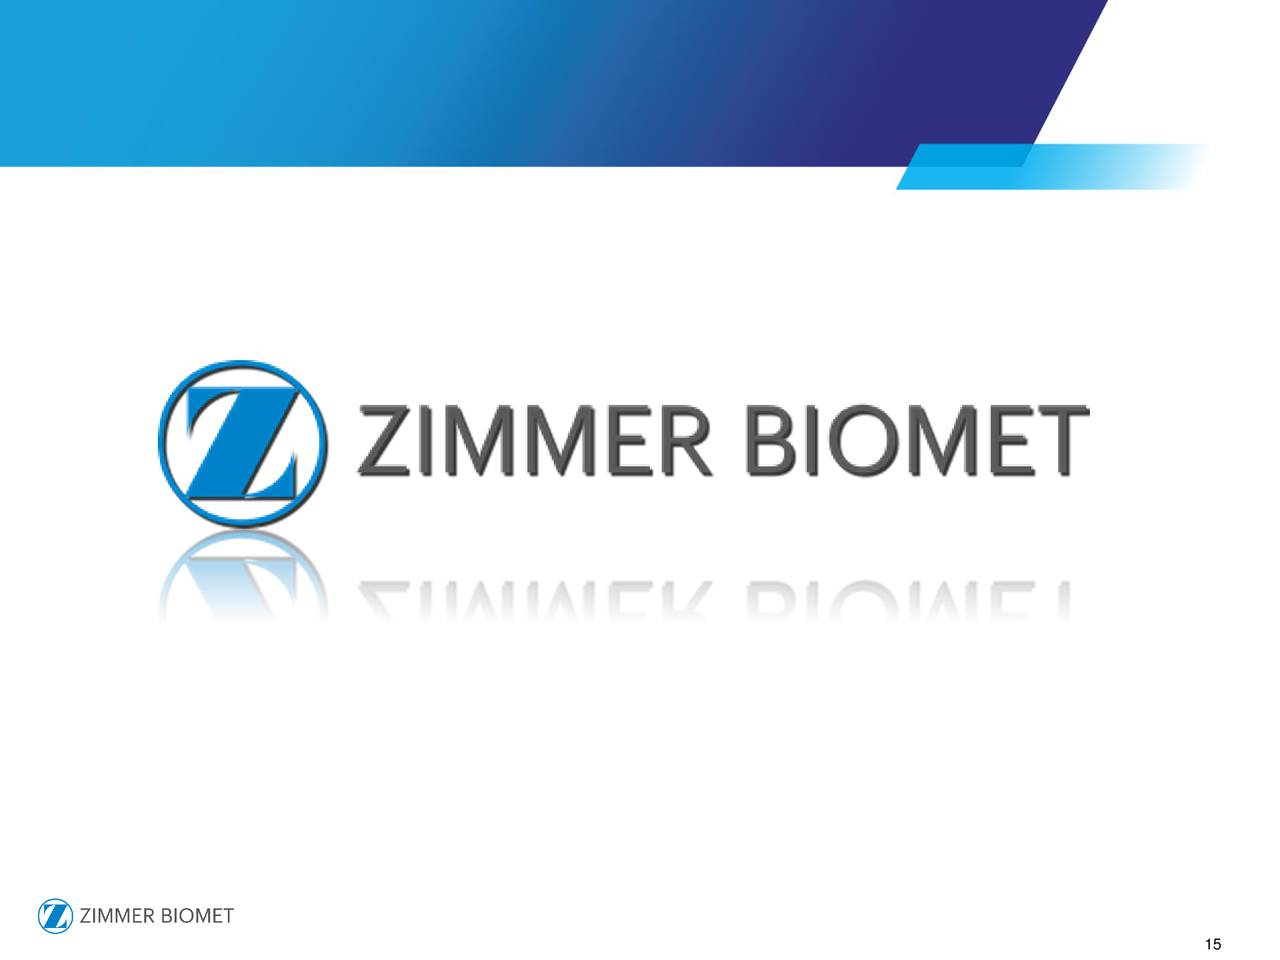 Zimmer biomet zbh presents at 35th annual j p morgan for Zimmer holdings